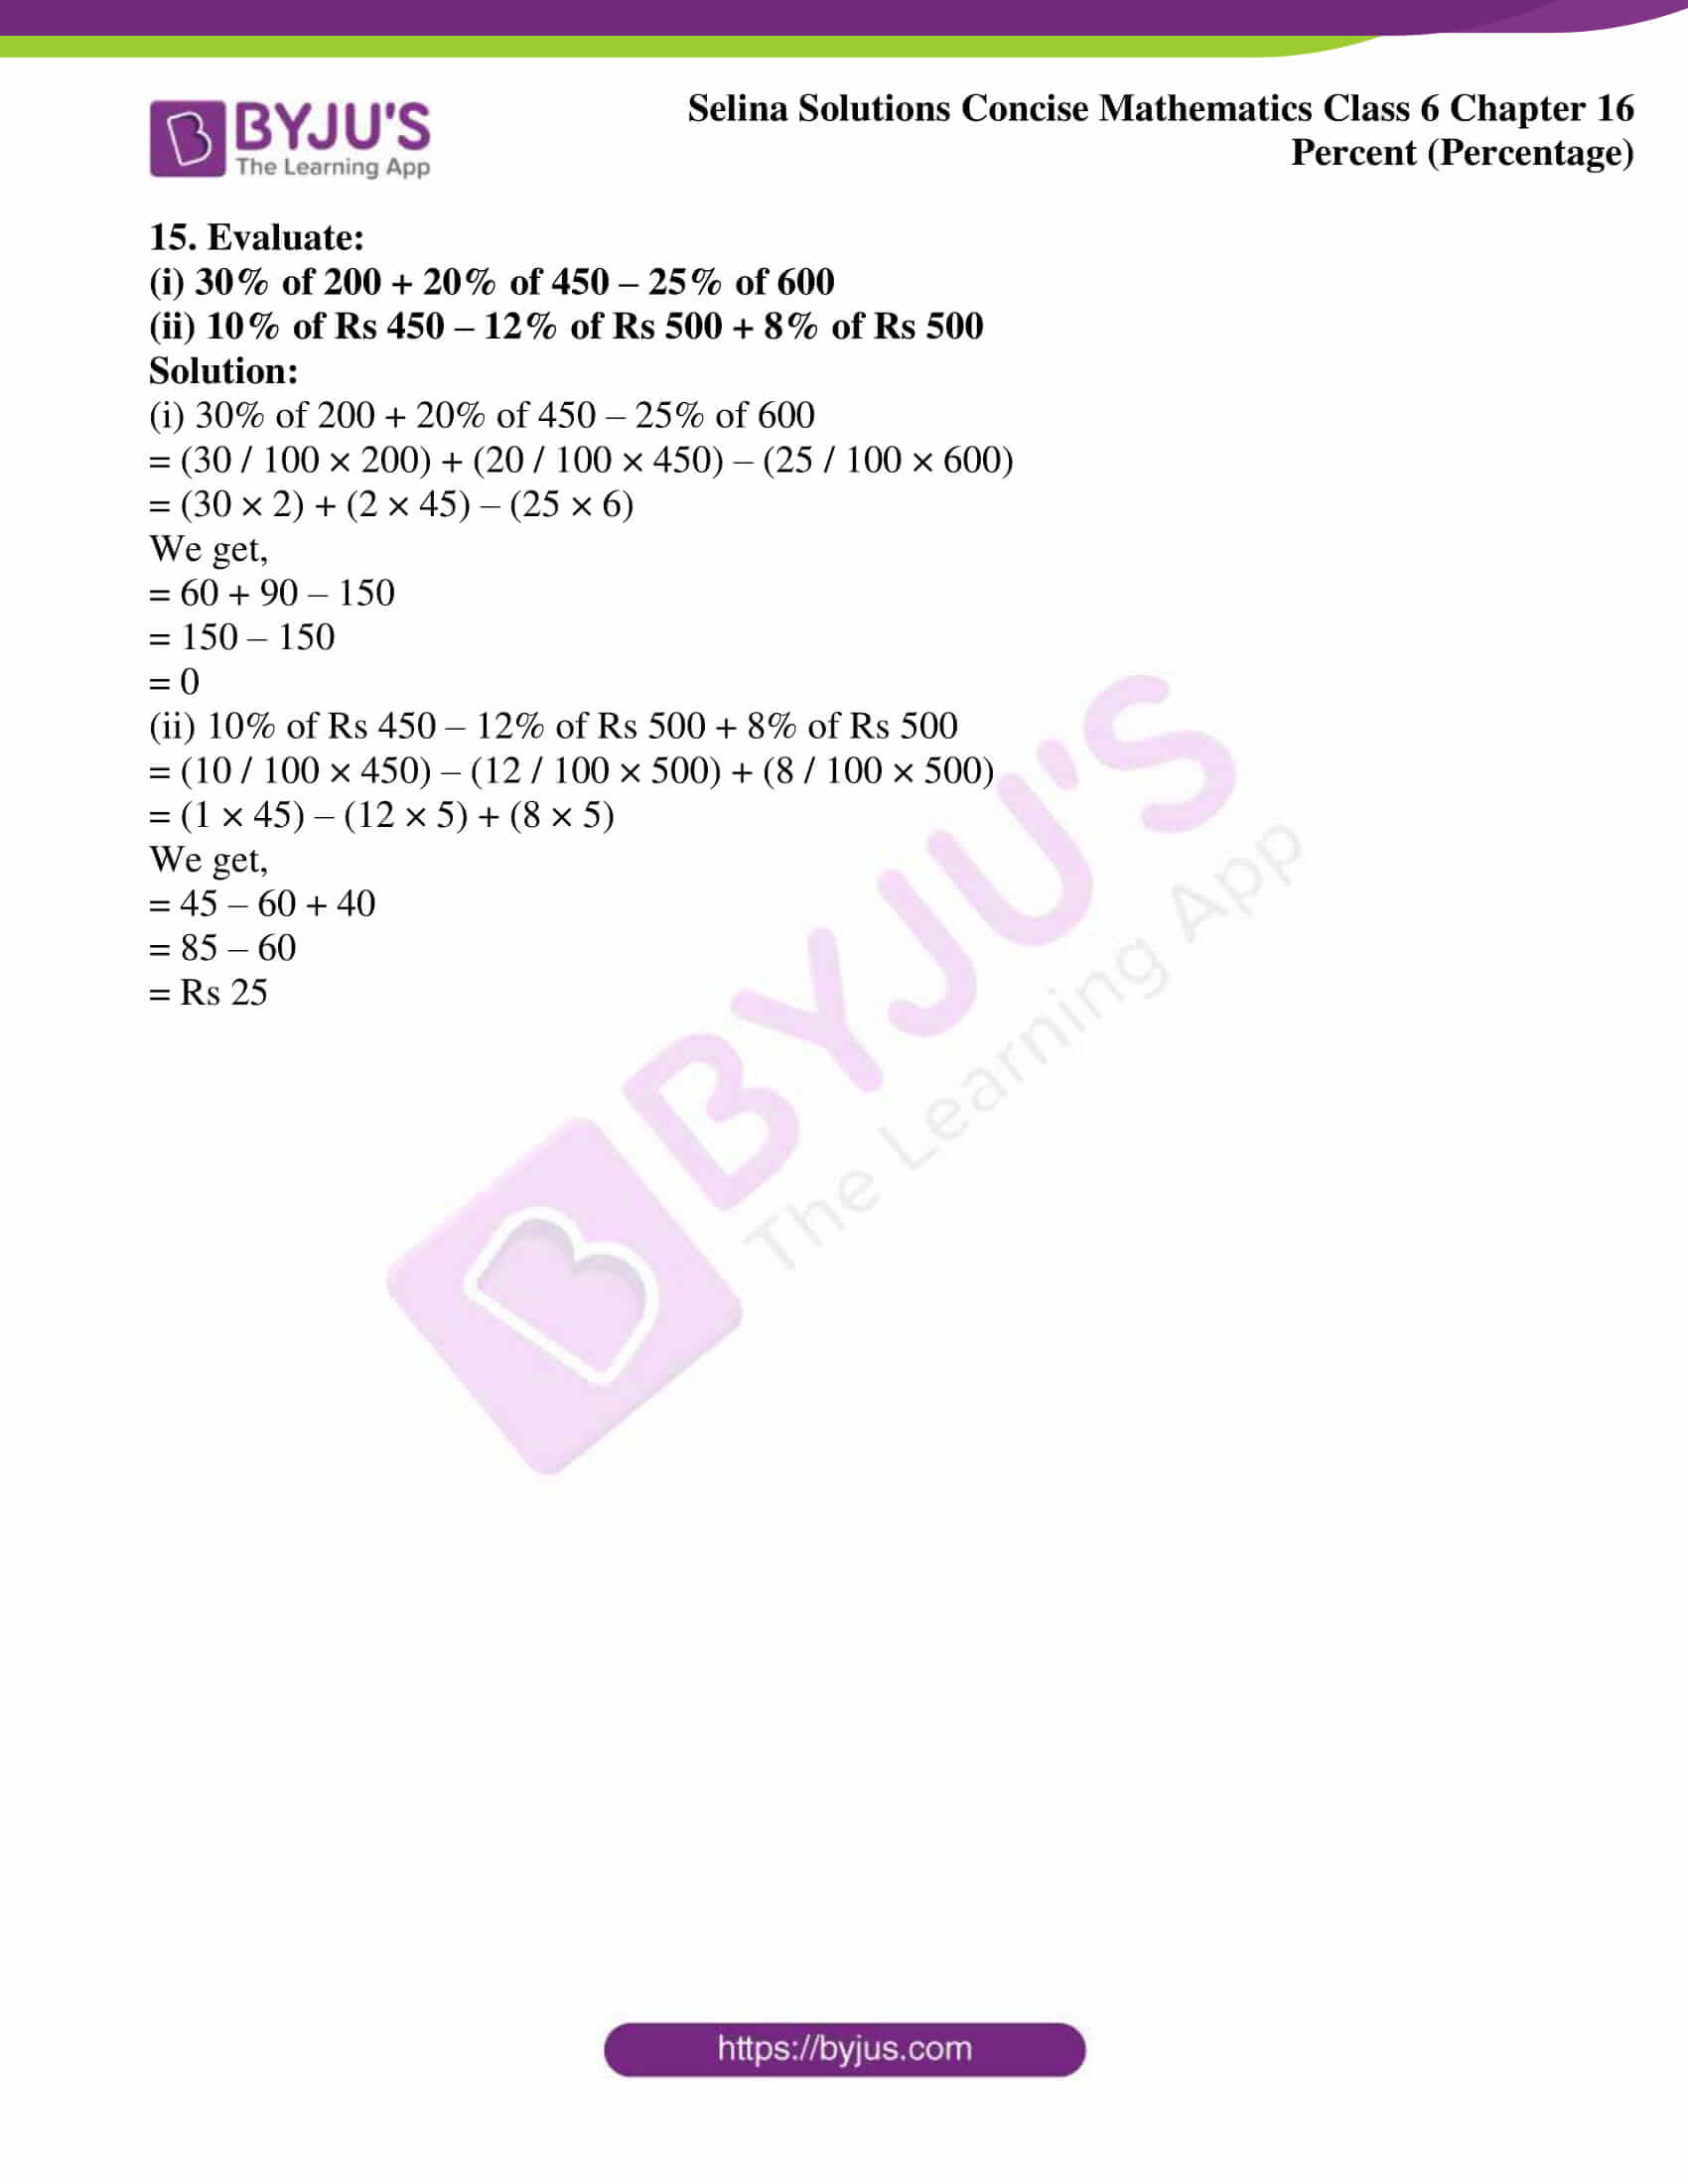 selina solution concise maths class 6 chapter 16 ex b 8